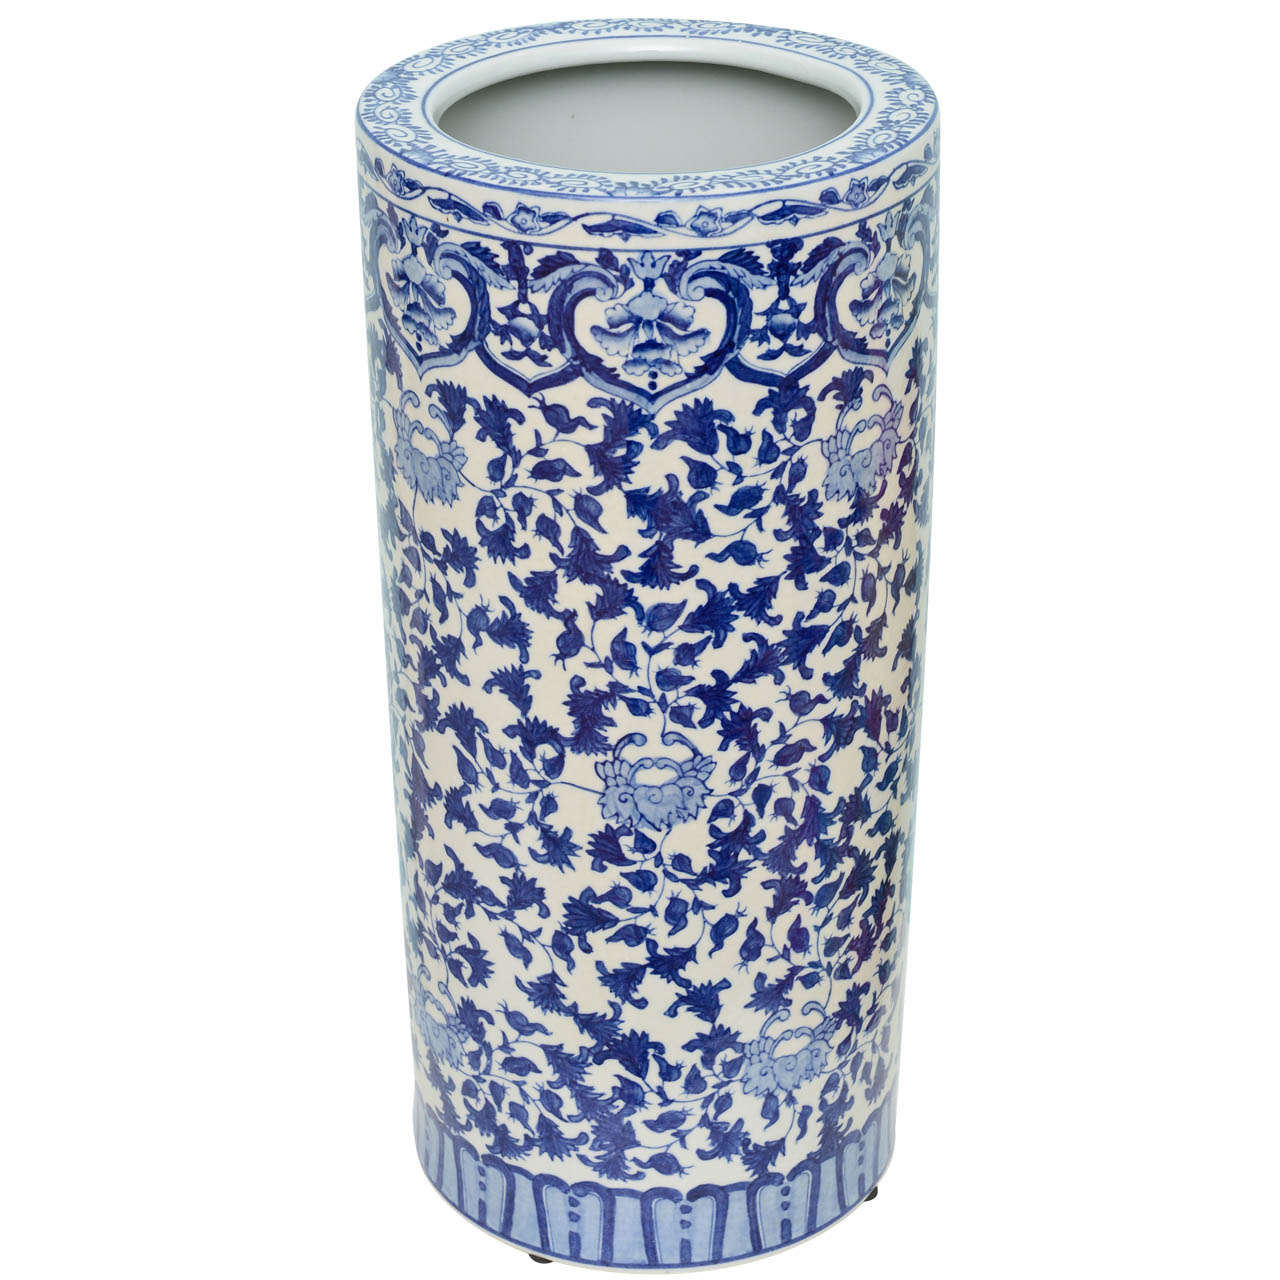 A Chinese Blue And White Porcelain Umbrella Stand At 1stdibs